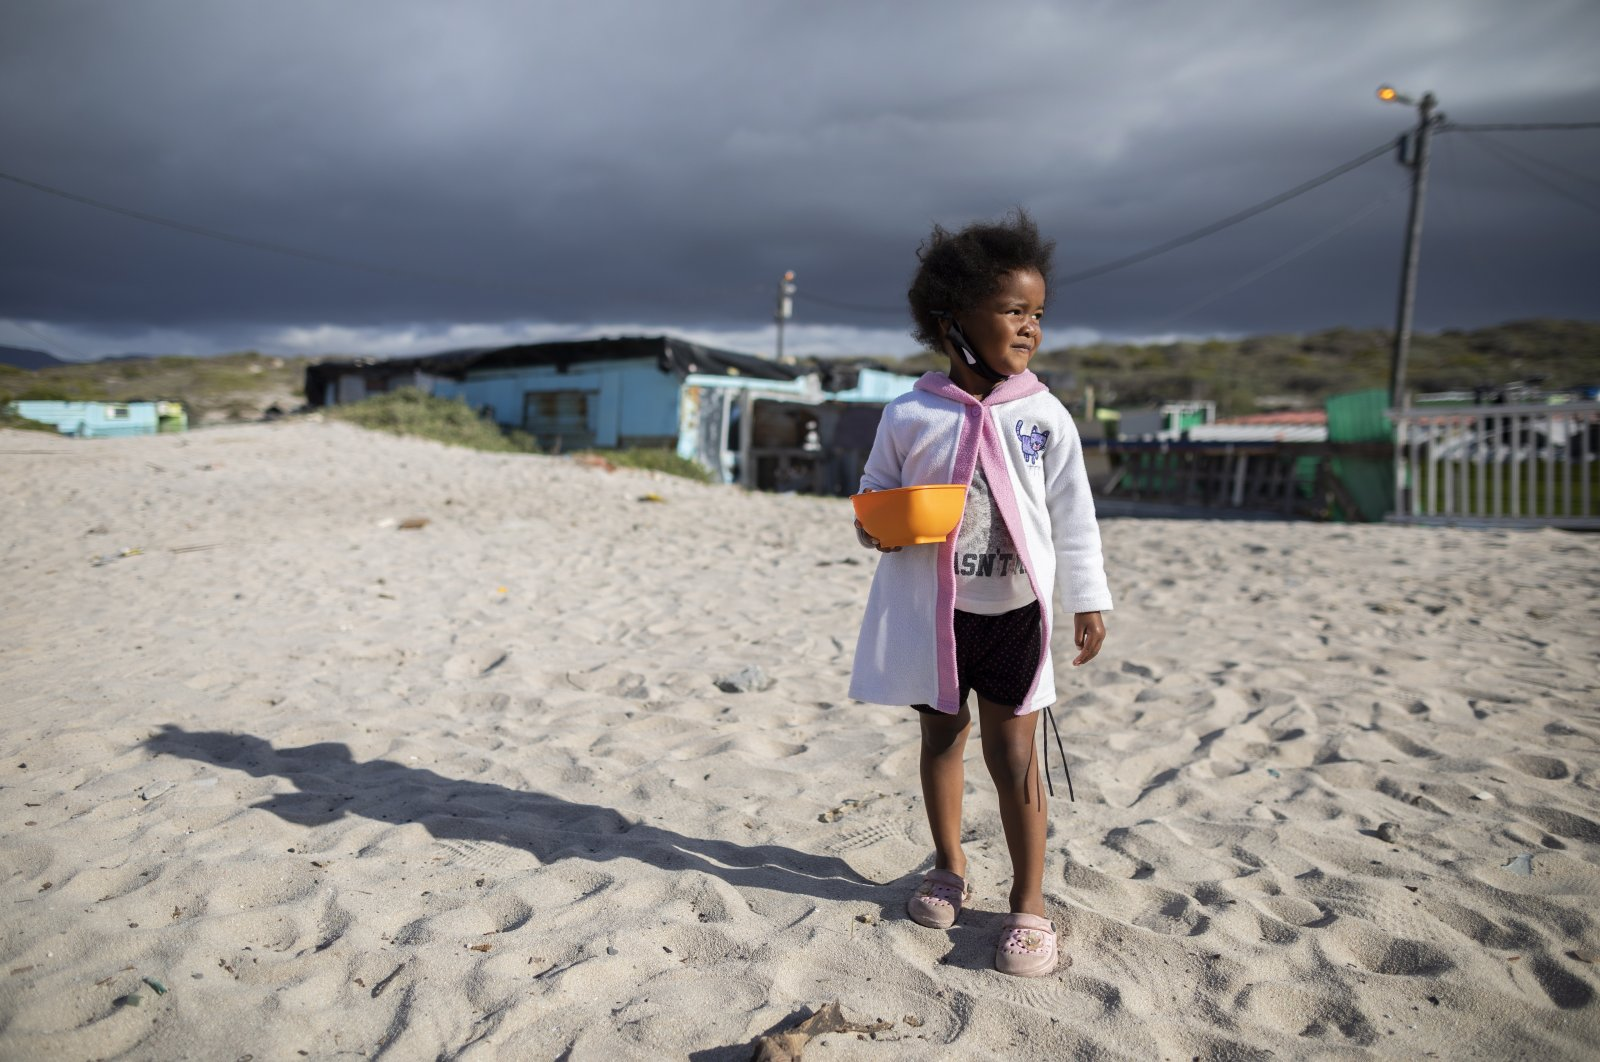 A girl from the 7de Laan shack settlement waits for food from the 9 Miles Project COVID-19 community support program in Strandfontein, Cape Town, South Africa, April 20, 2020. (EPA Photo)